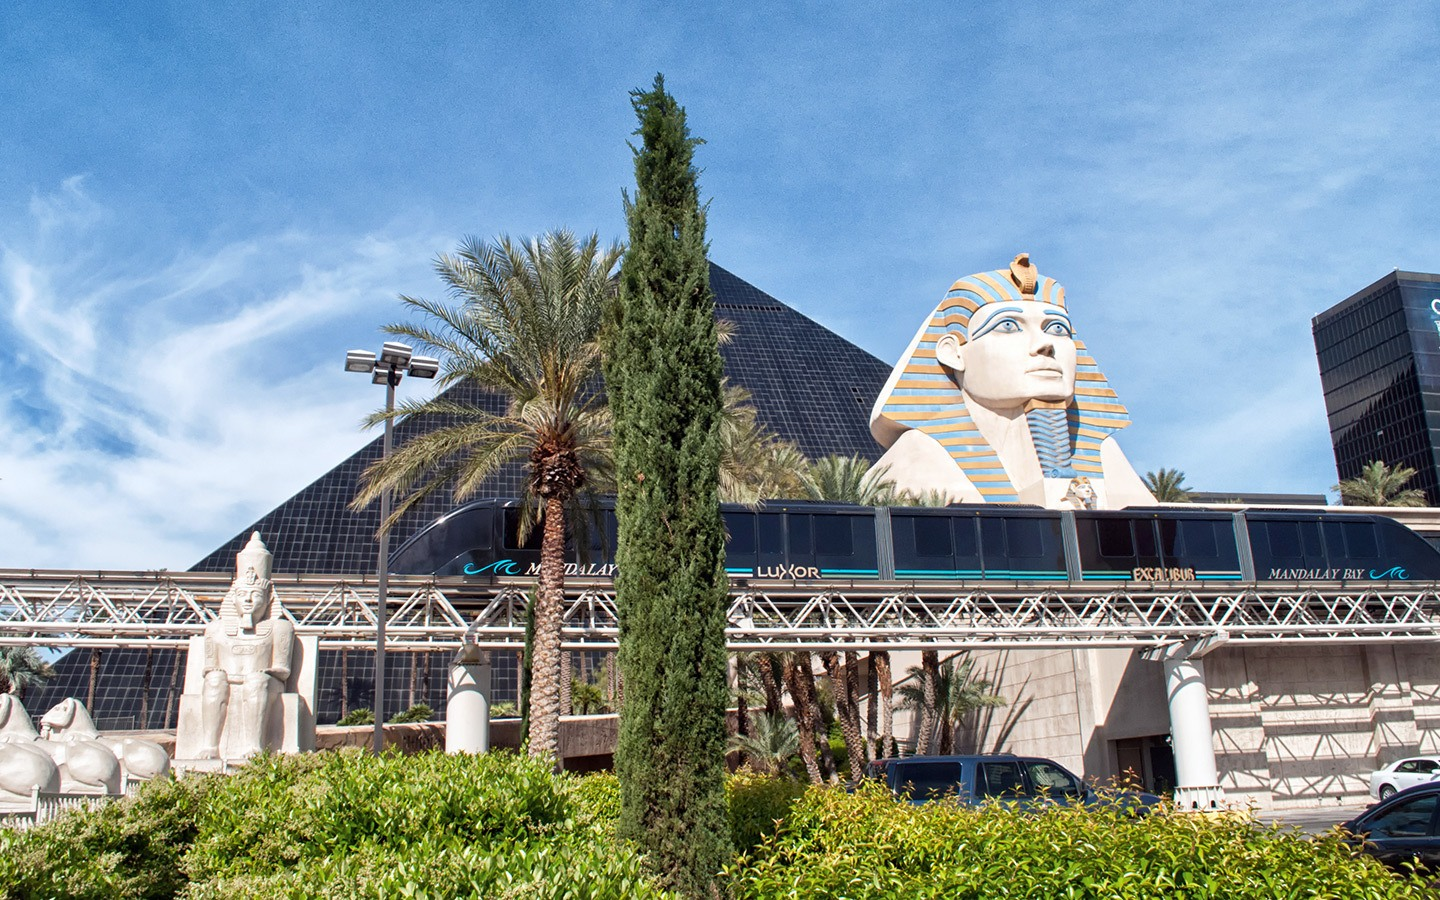 The Mandalay Bay–Excalibur monorail passing by the Luxor